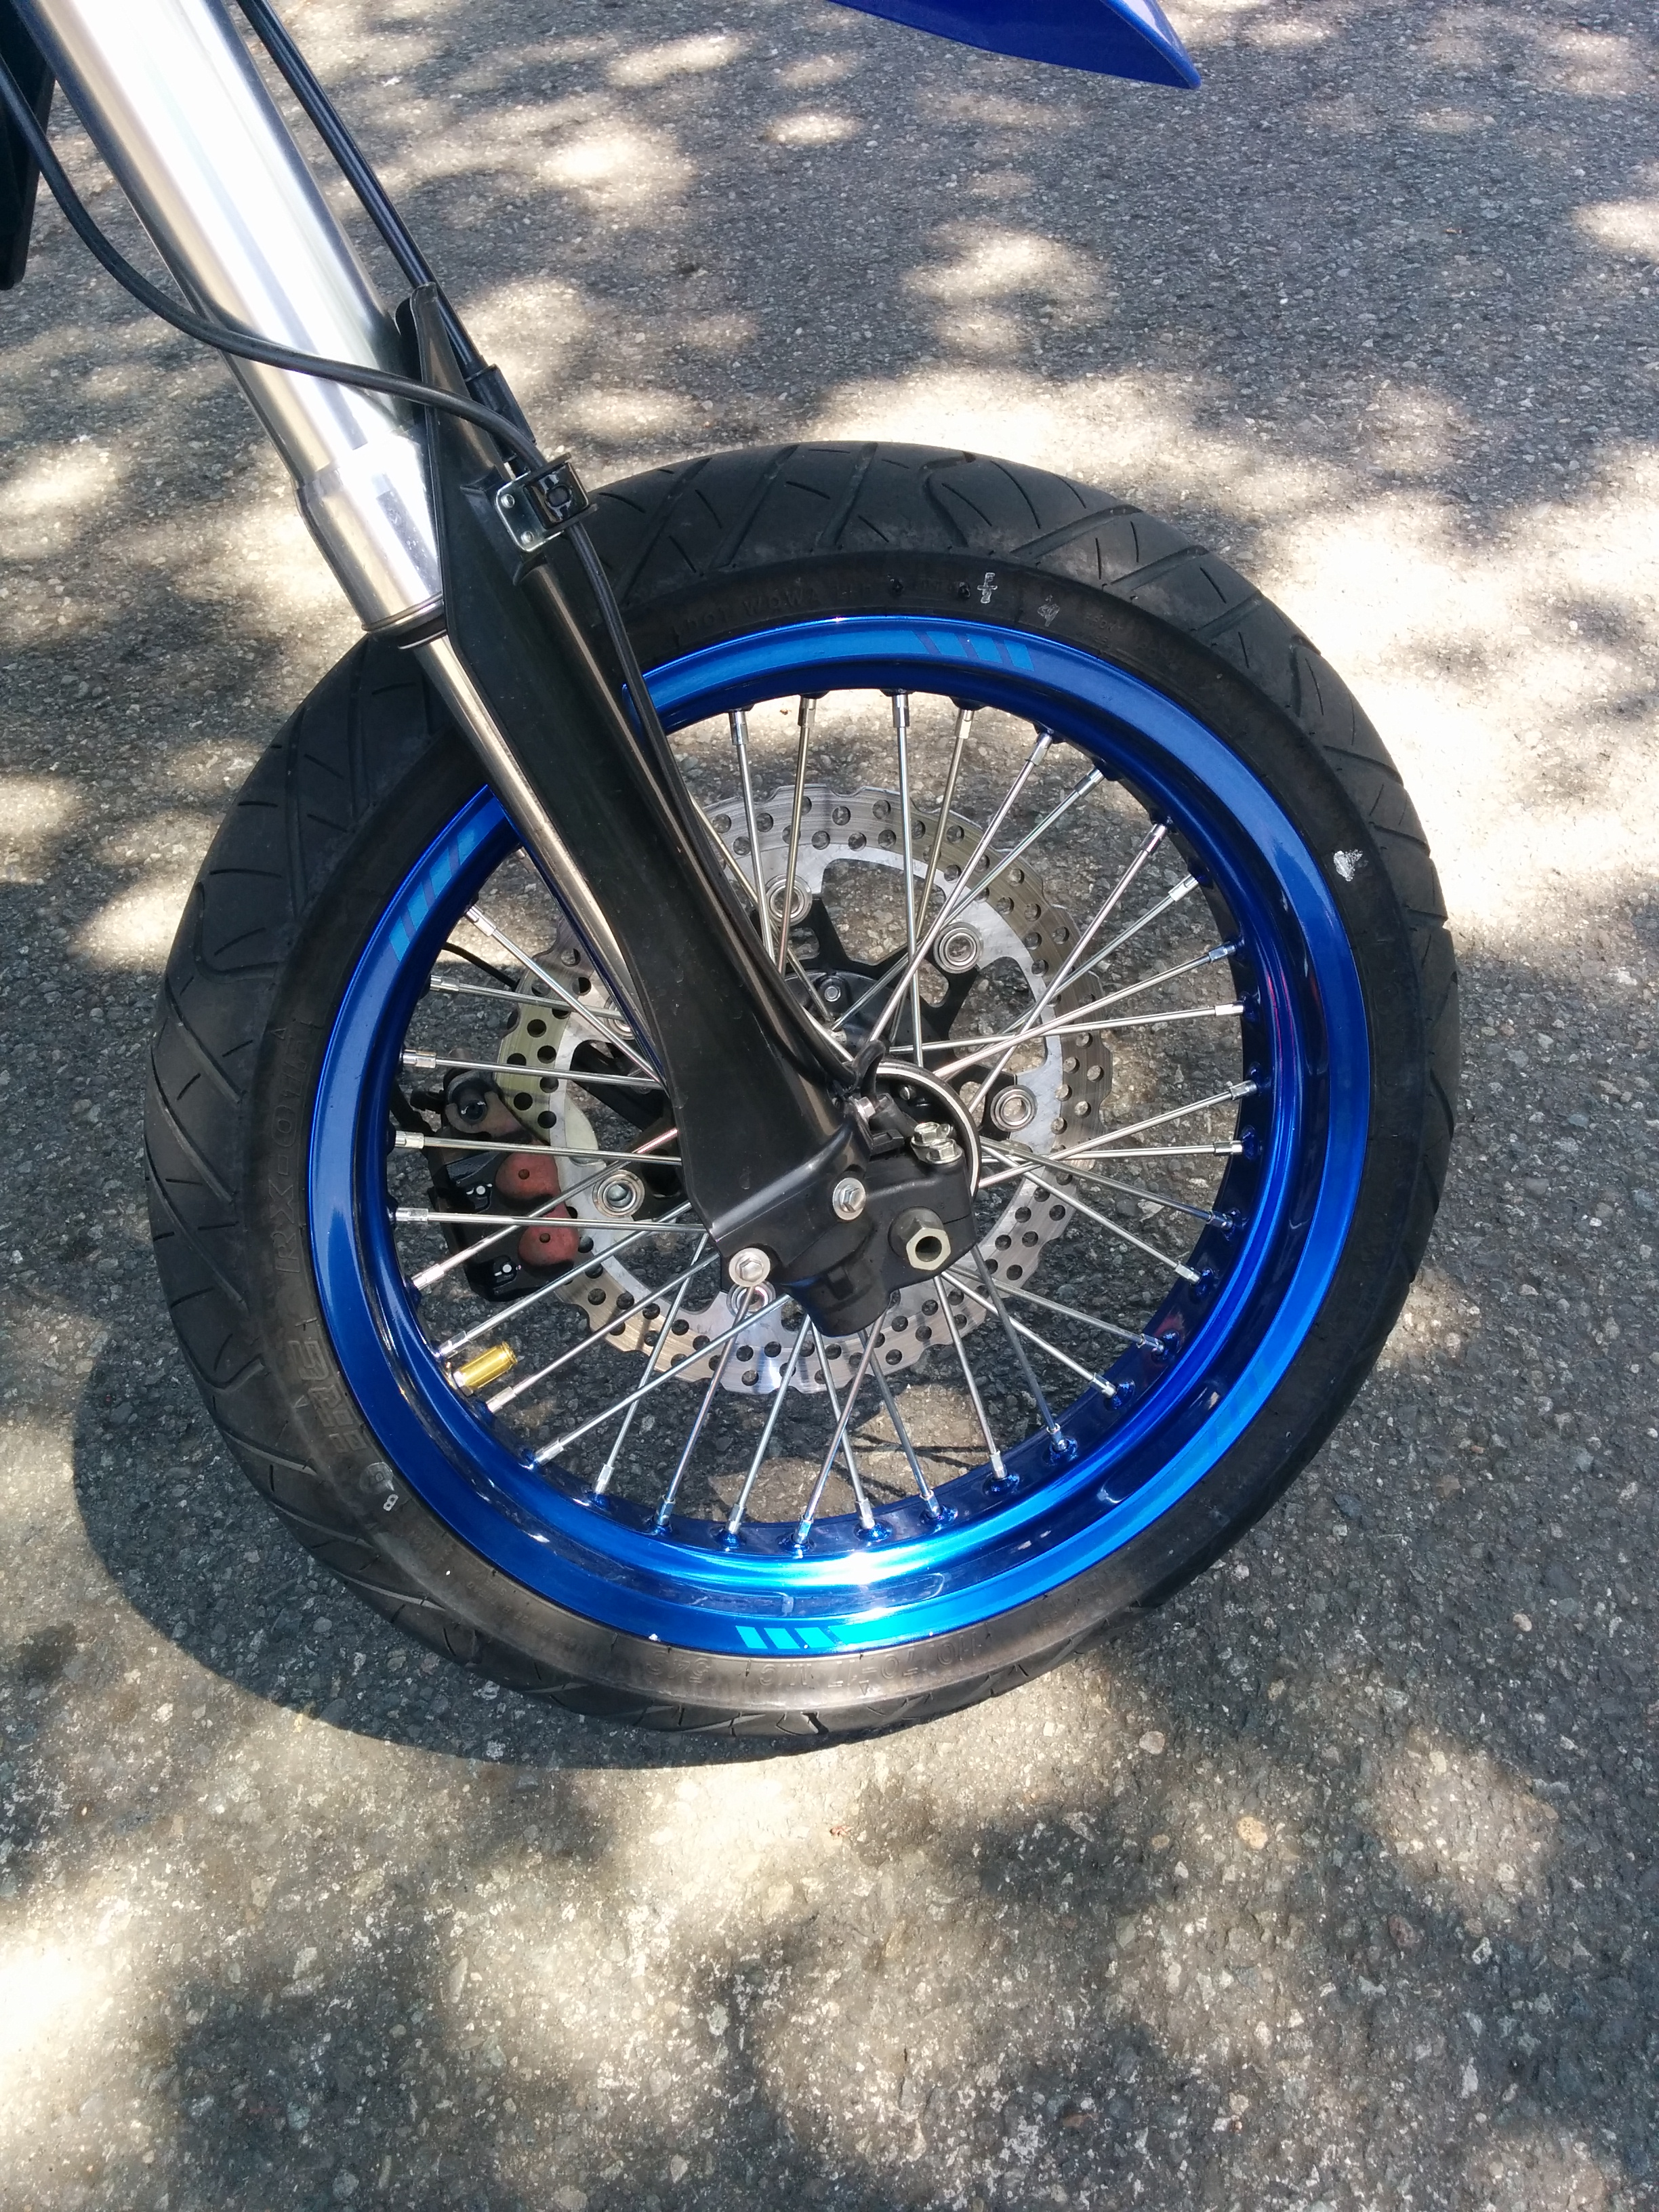 File:Wire motorcycle wheel with disc brake.jpg - Wikimedia Commons